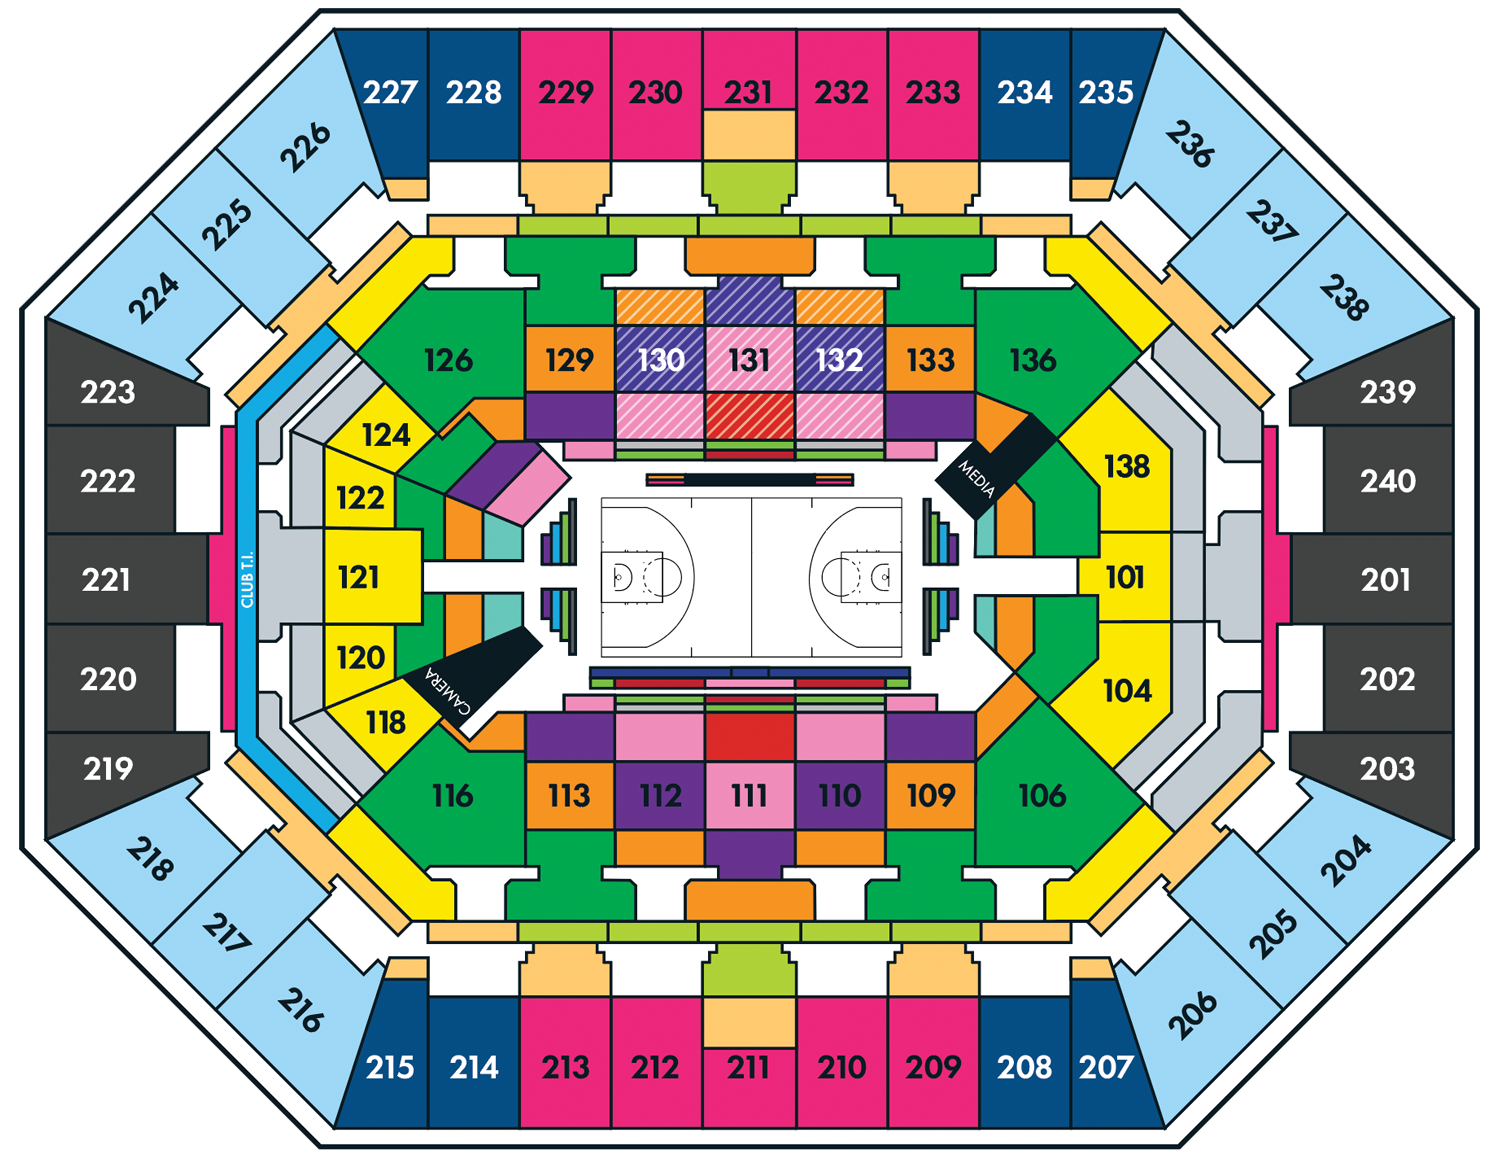 Timberwolves Seating Map